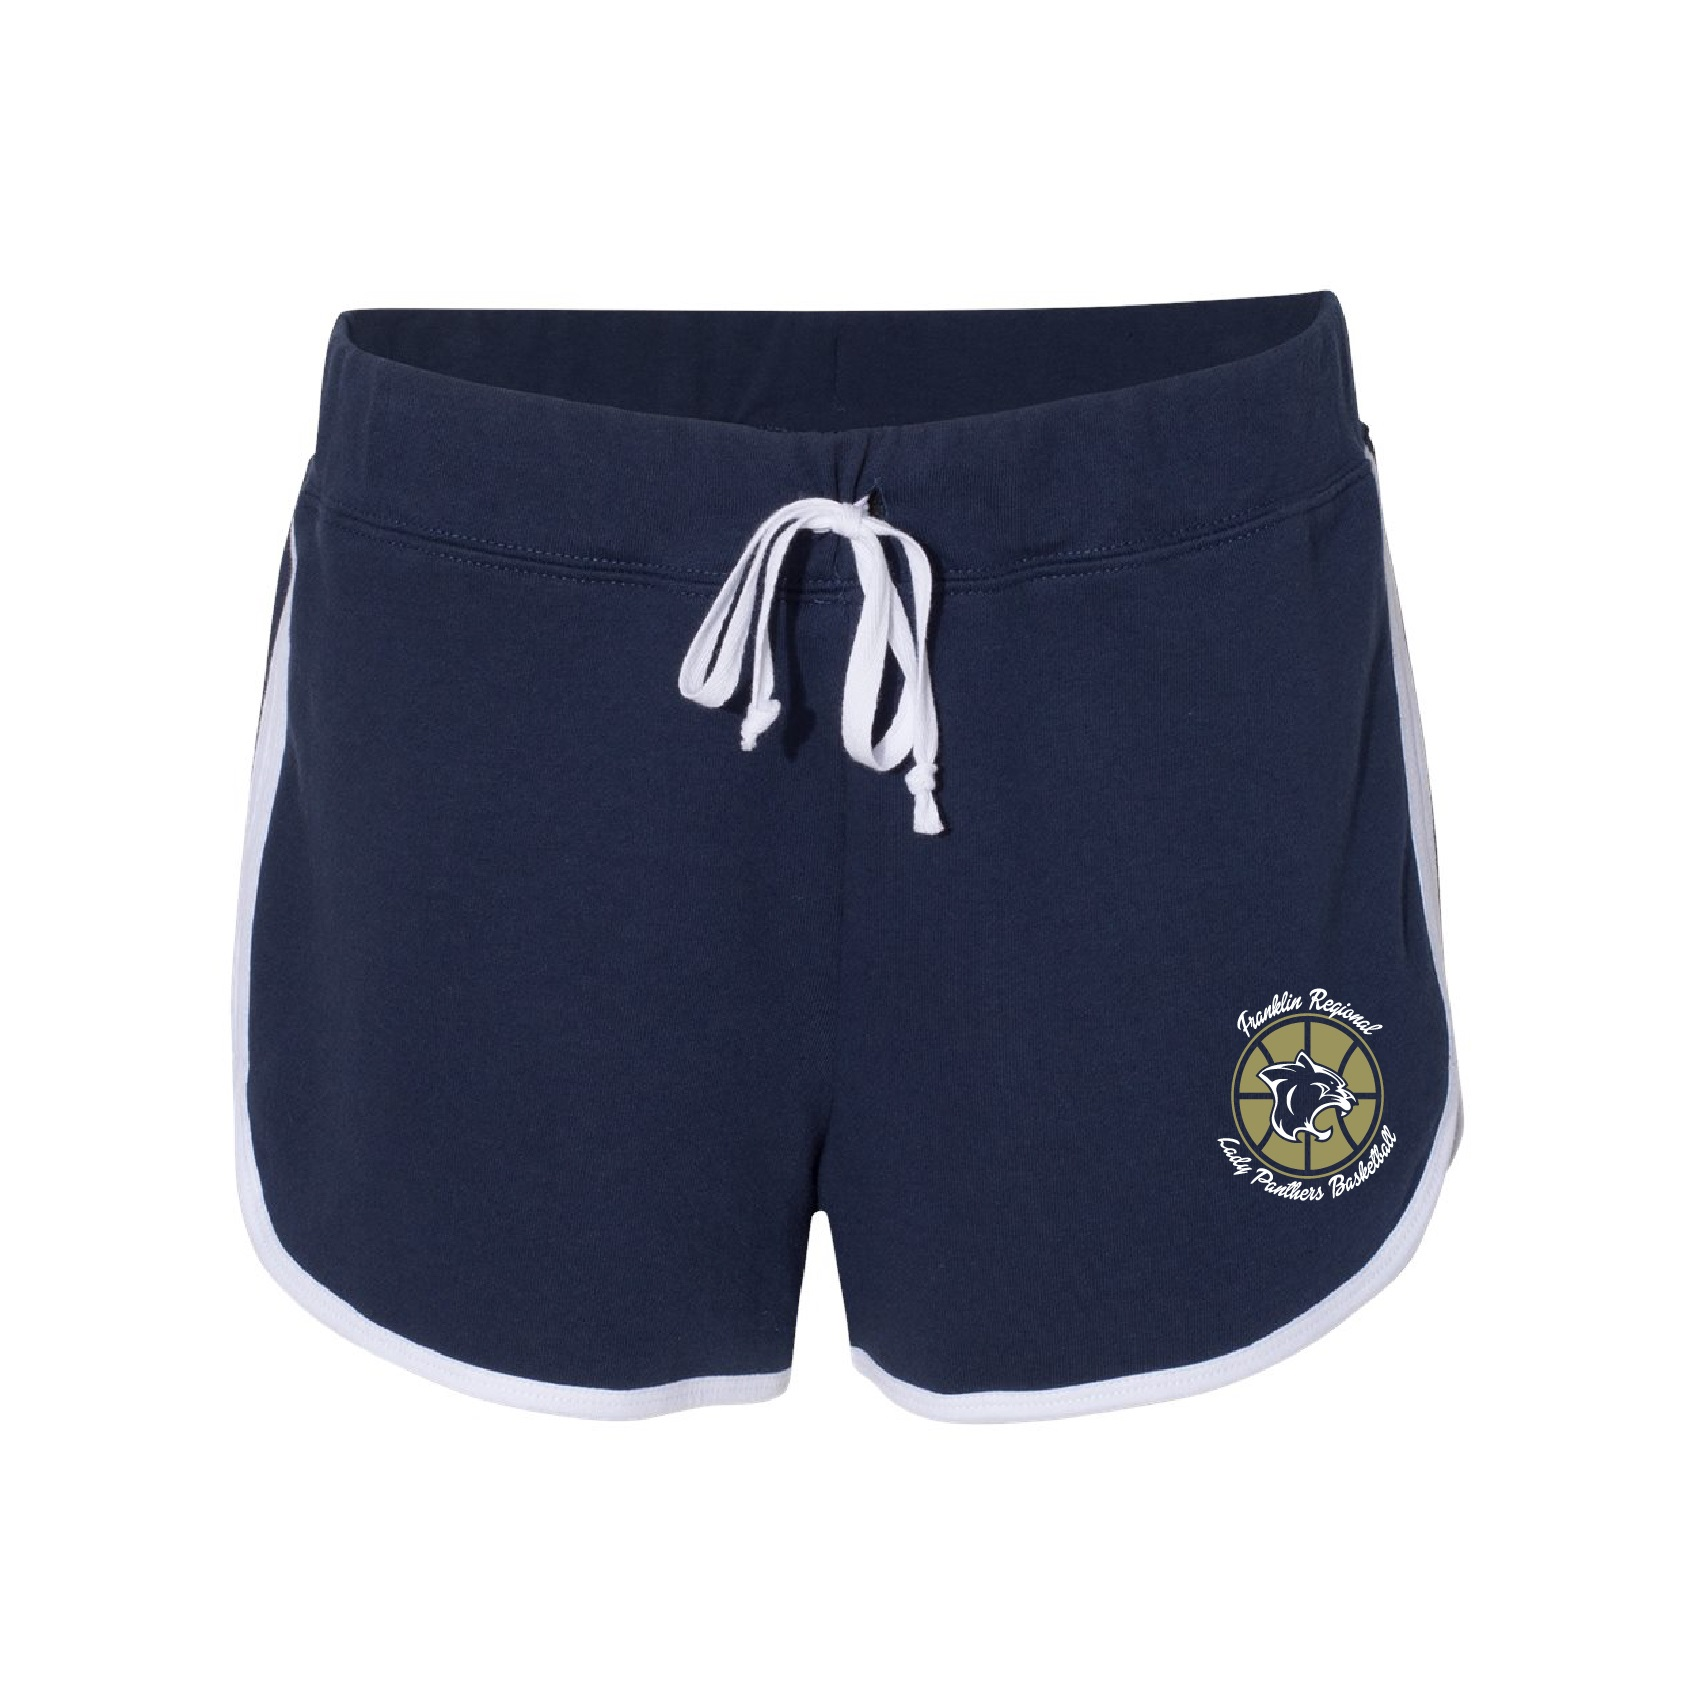 Boxercraft Women's Relay Shorts